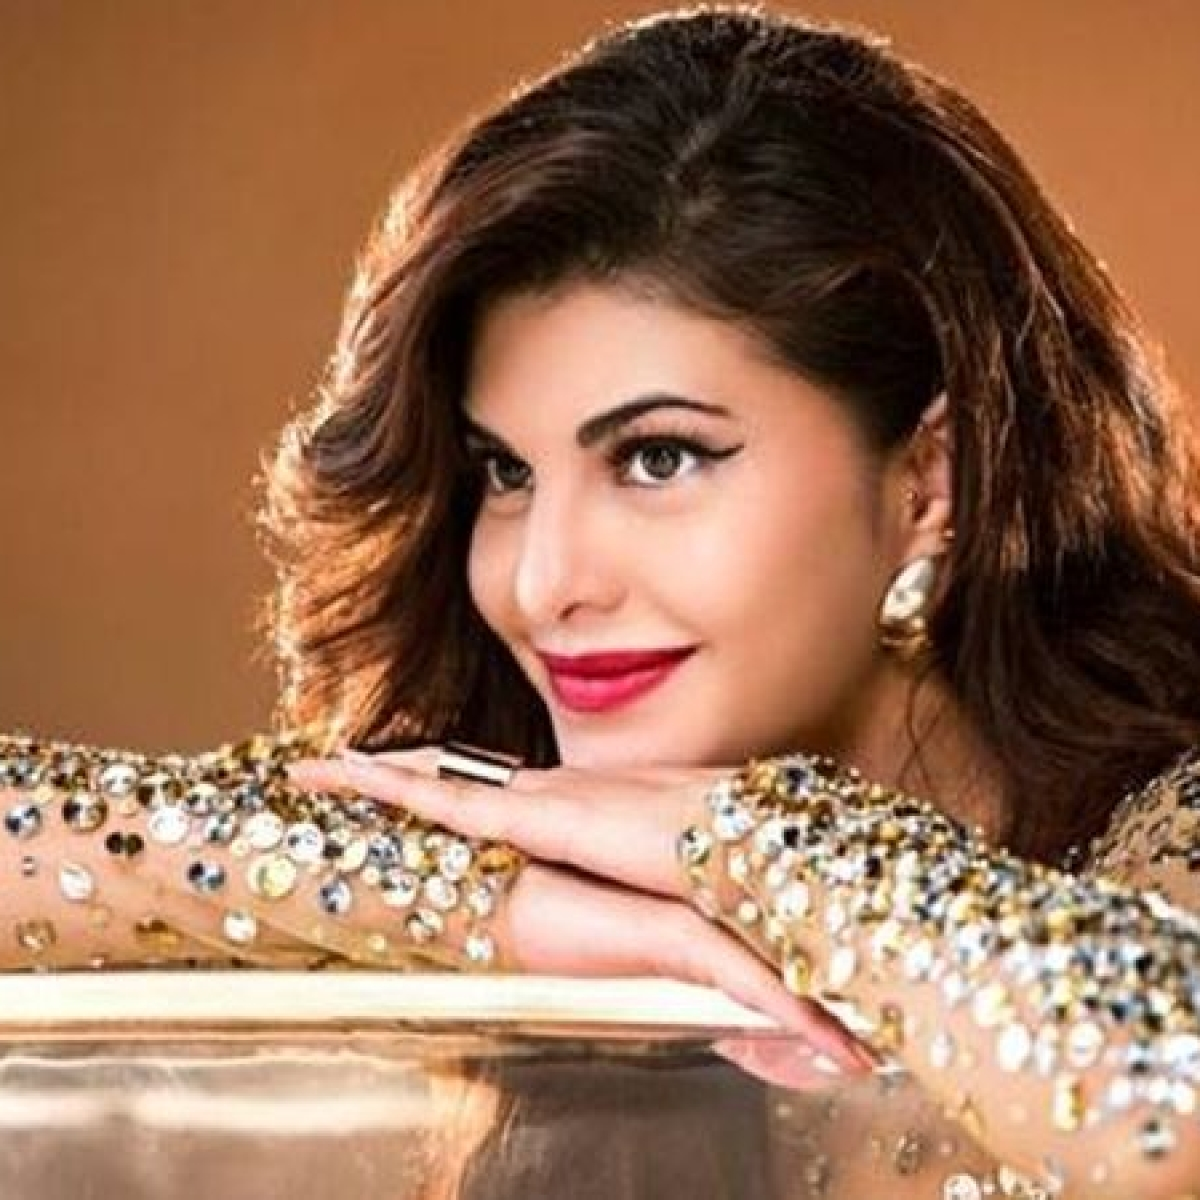 Jacqueline Fernandez posts heartwarming shout out to kids, applauds their discipline amid COVID-19